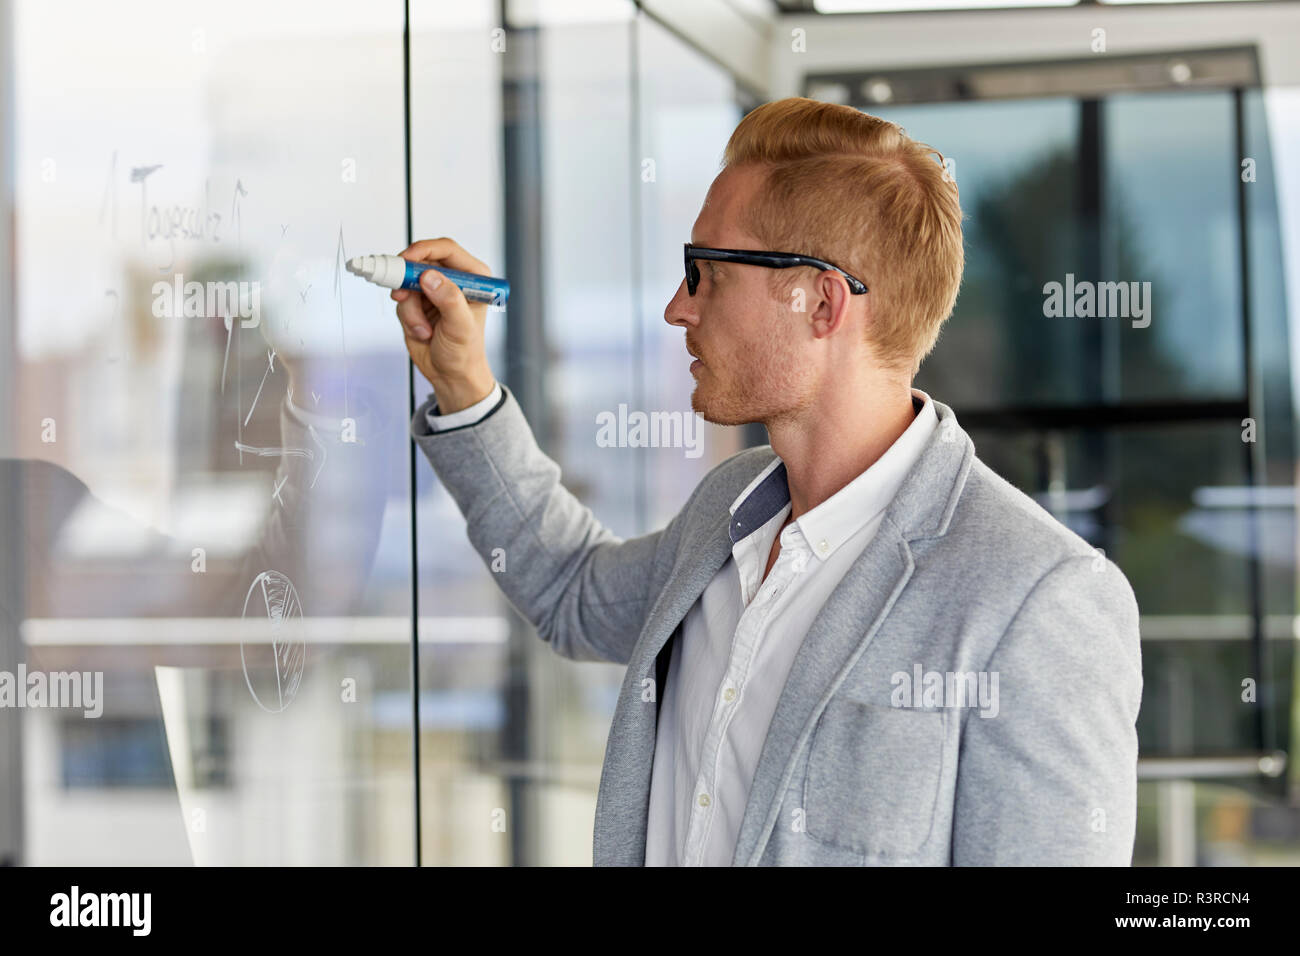 Businessman writing on glass pane in office - Stock Image